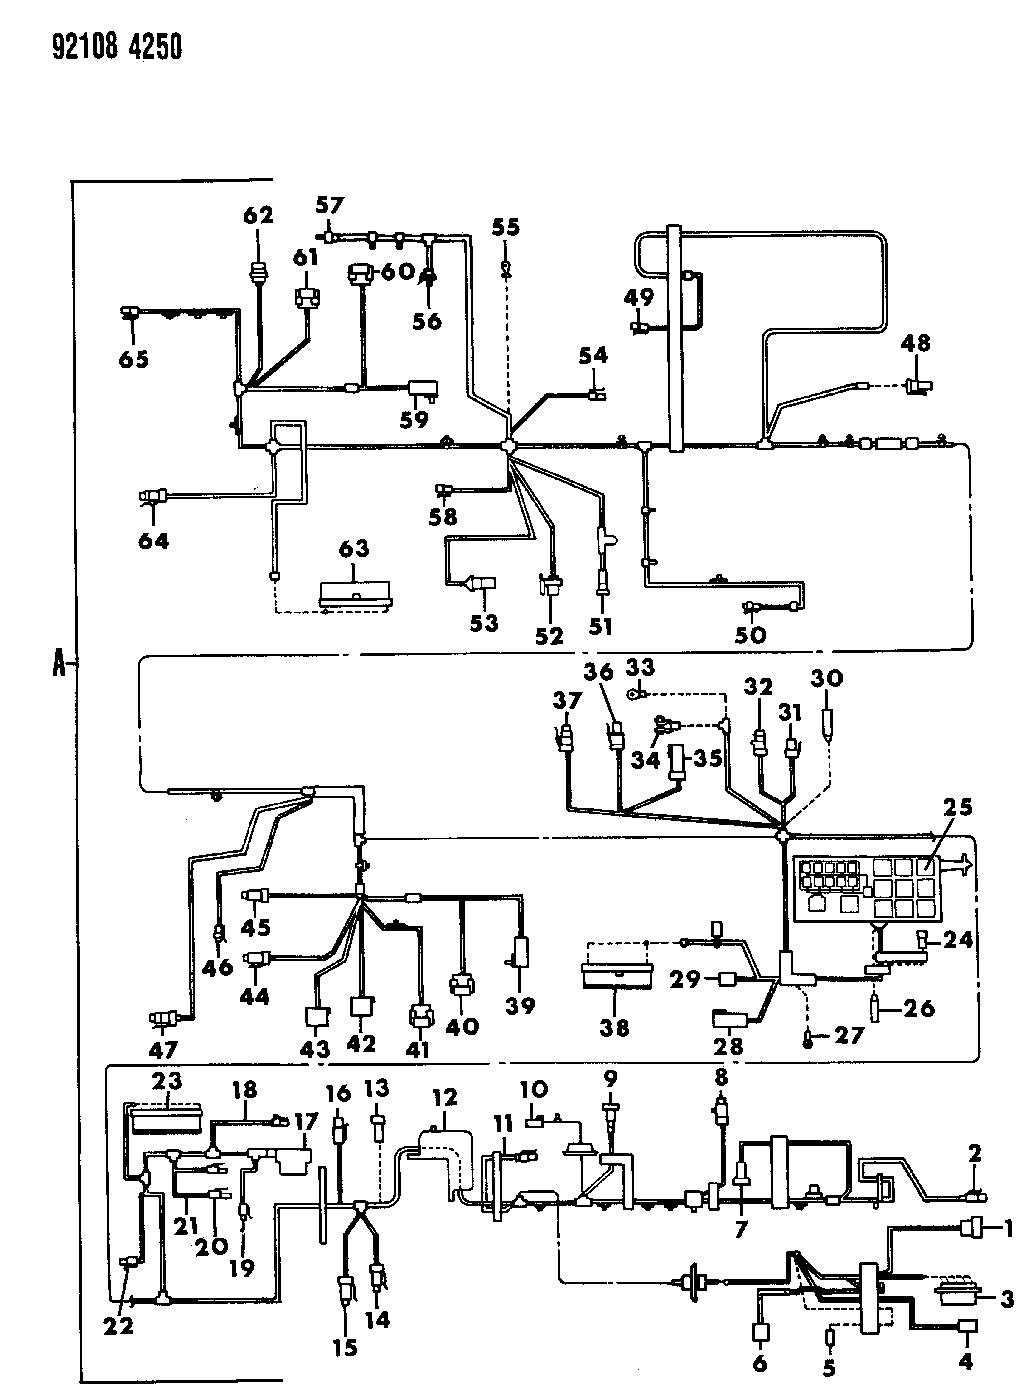 1992 Chrysler New Yorker Fifth Avenue Wiring